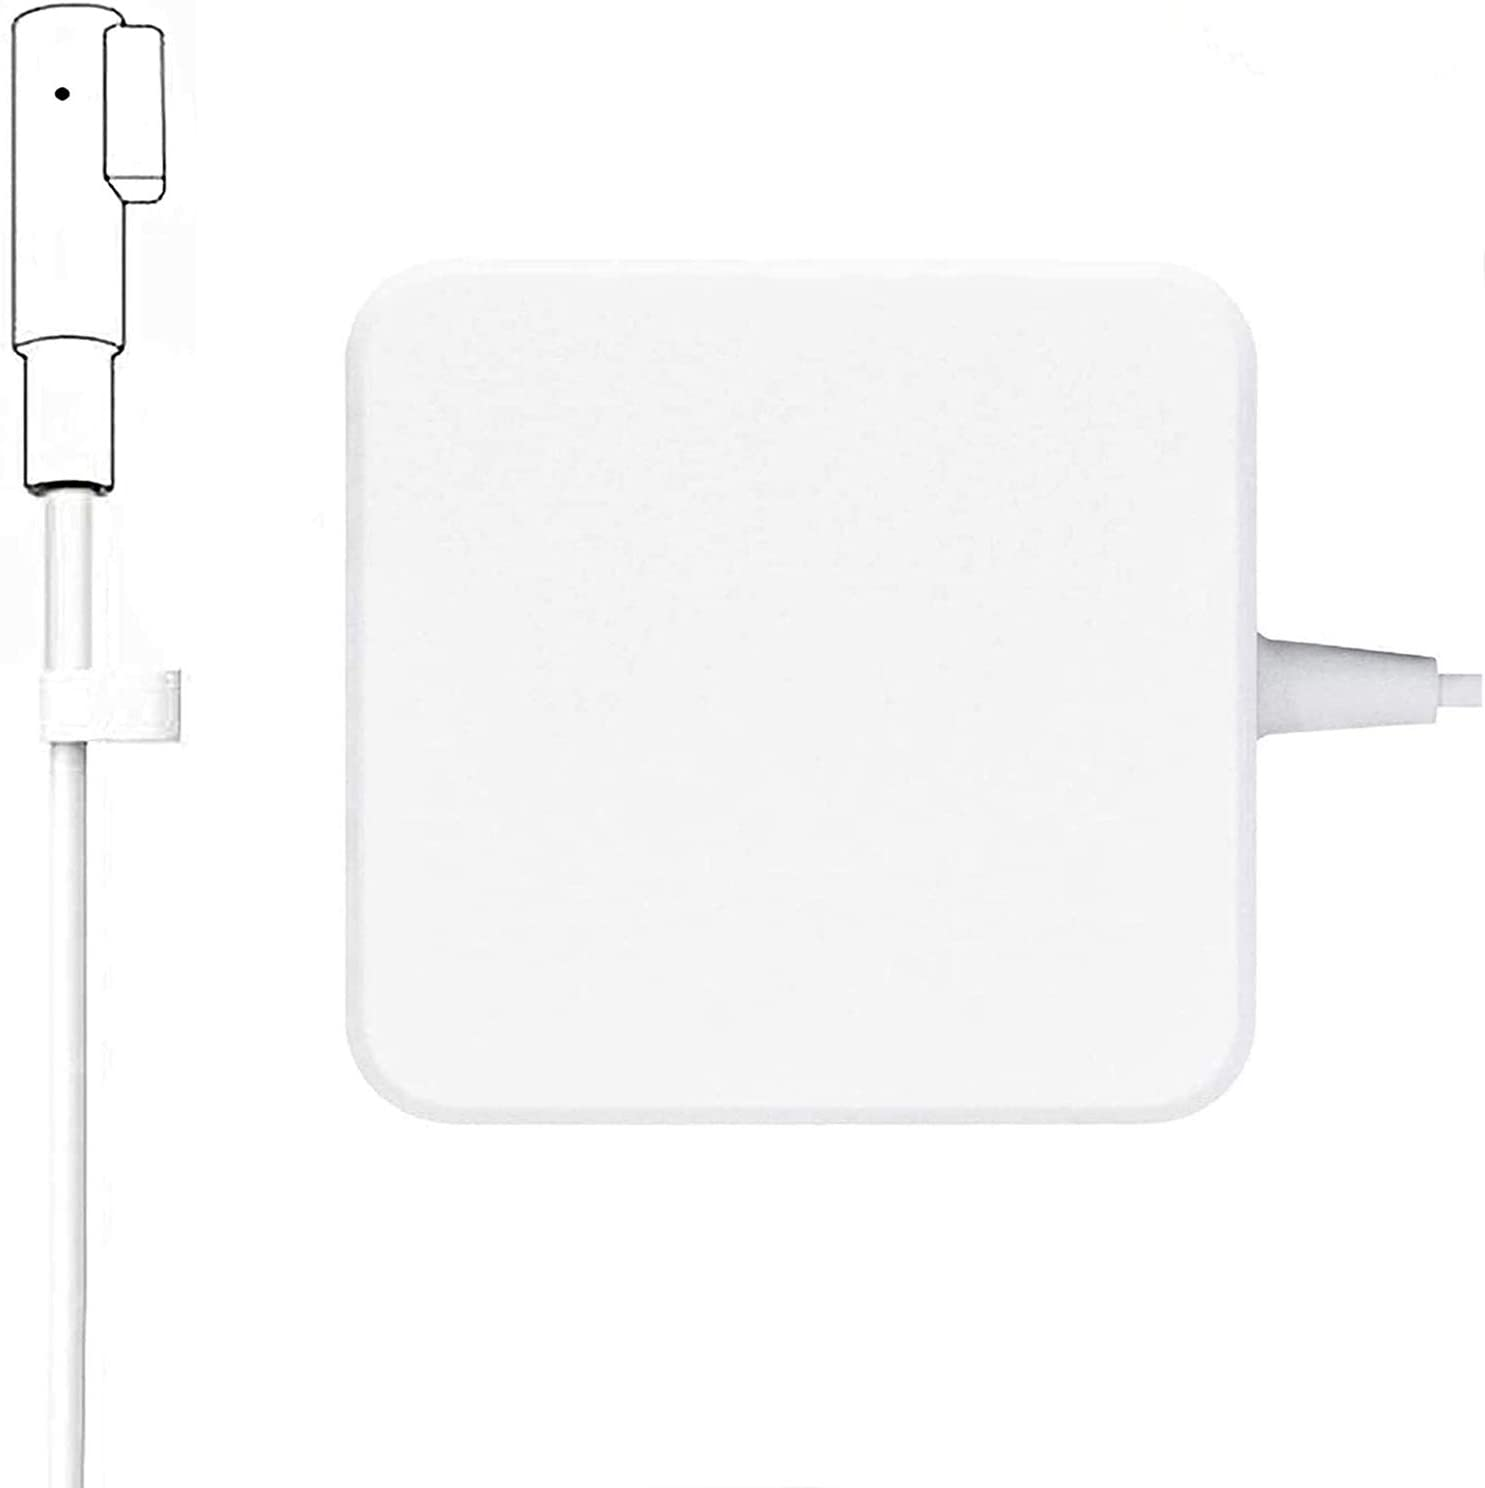 85W Mac Book Pro Charger,L-Tip Backup Power Adapter Charger Suitable Replacement for Mac Book Pro 13,15,17 Inch with Magnetic Connector(Compatible with Models Before Mid 2012).